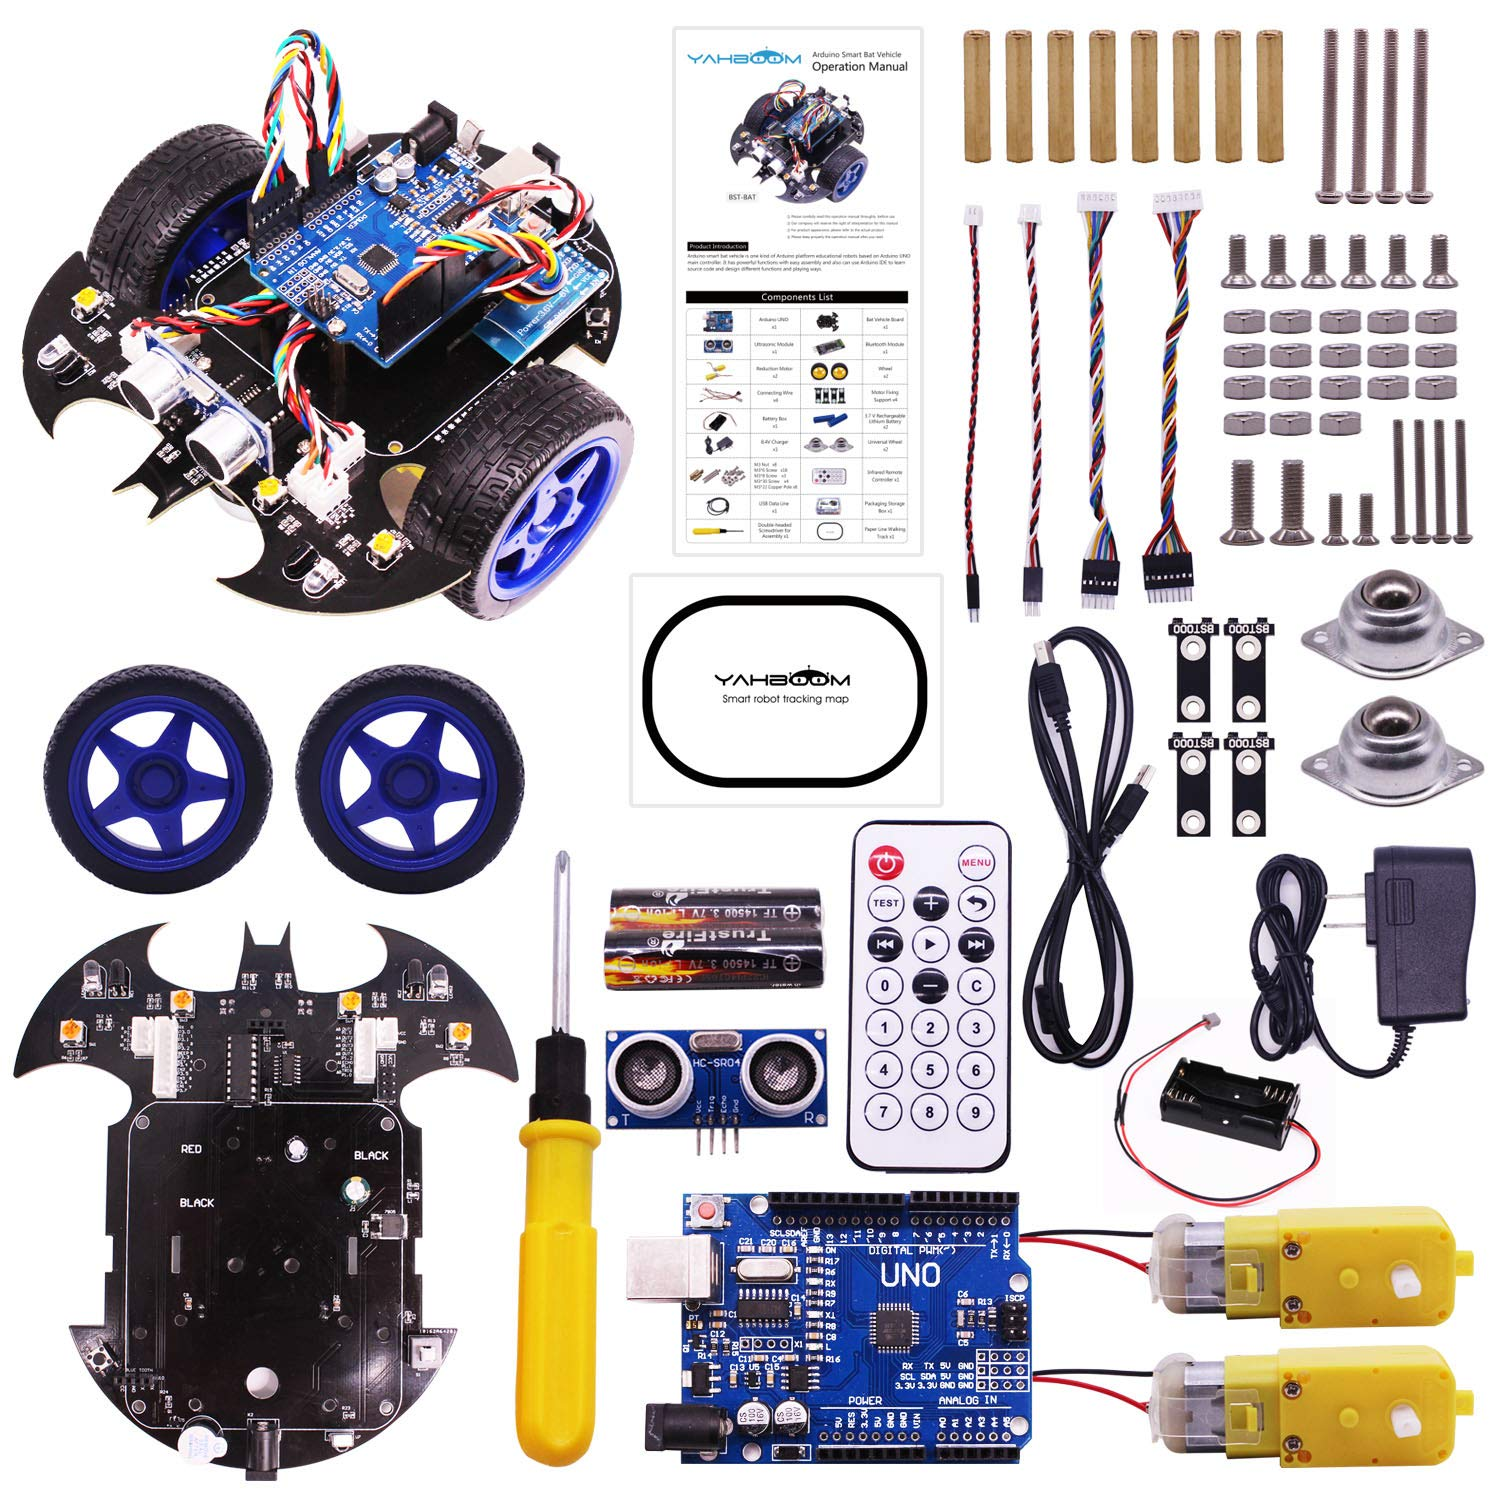 Yahboom-maker Robotics Starter Learning Building Kits Robot Car Kit for Arduino UNO R3 Scratch 3.0 Bat Smart Robots Toy for Programmable STEM Educational Toys with Tutorial for Kids 8+ and Adults